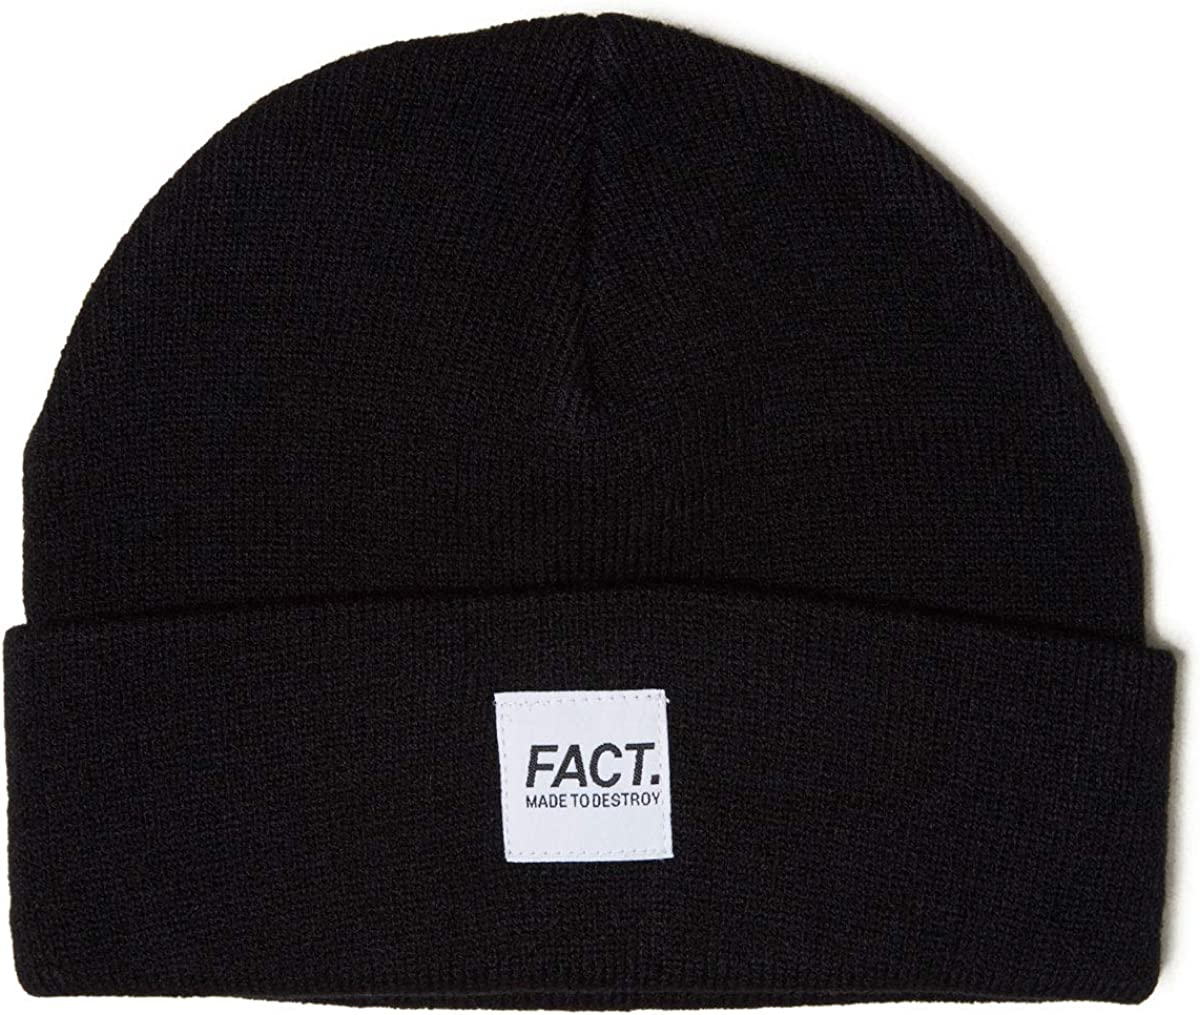 FACT Free shipping anywhere in Sales the nation Box Logo Black Beanie -